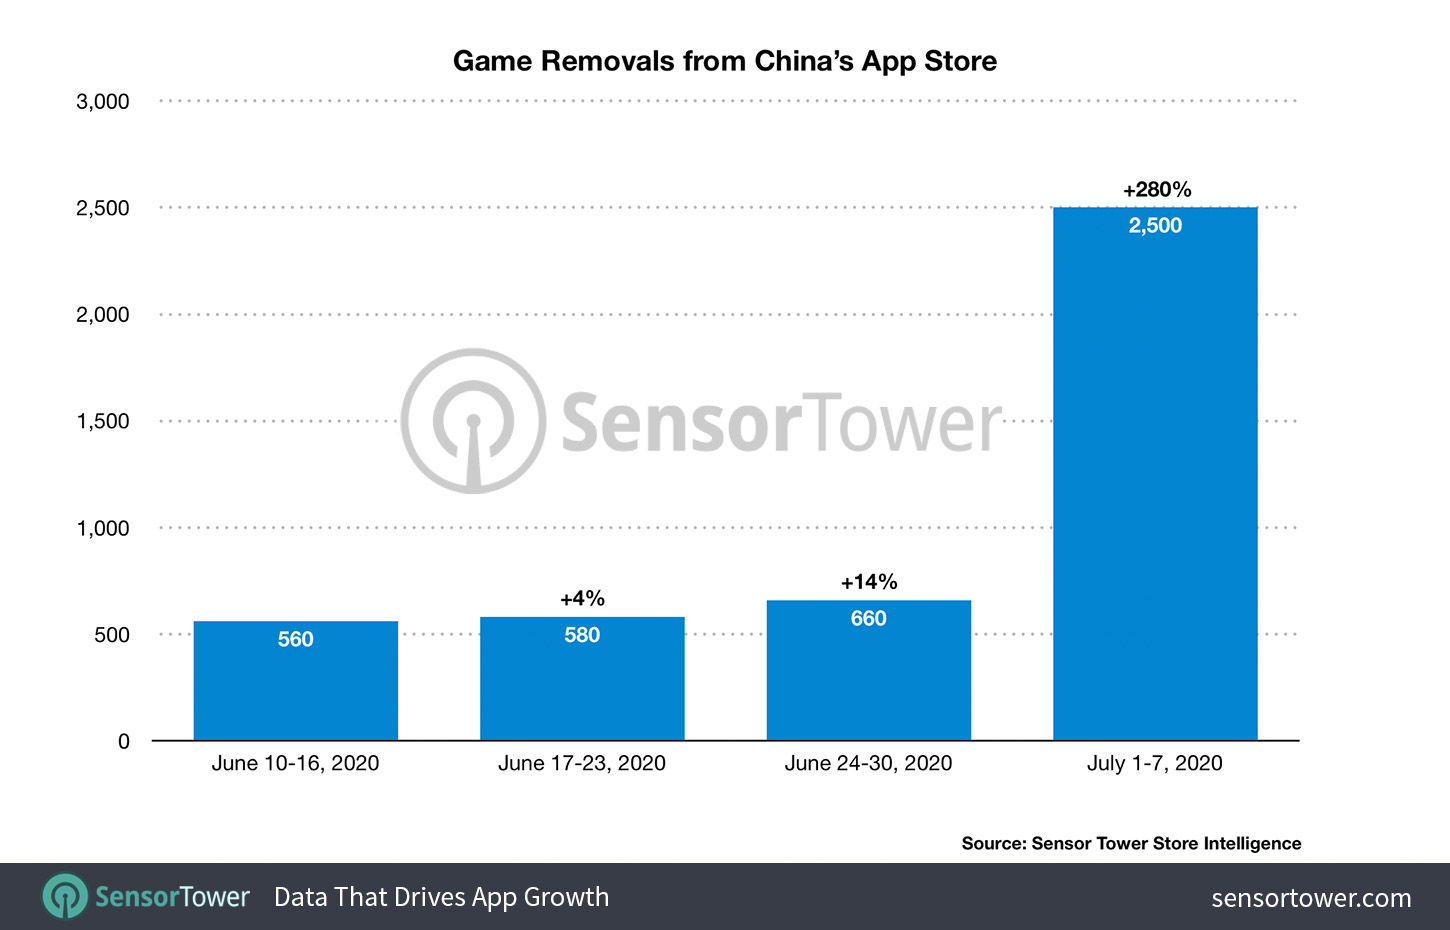 China App Store Game Removals by Week